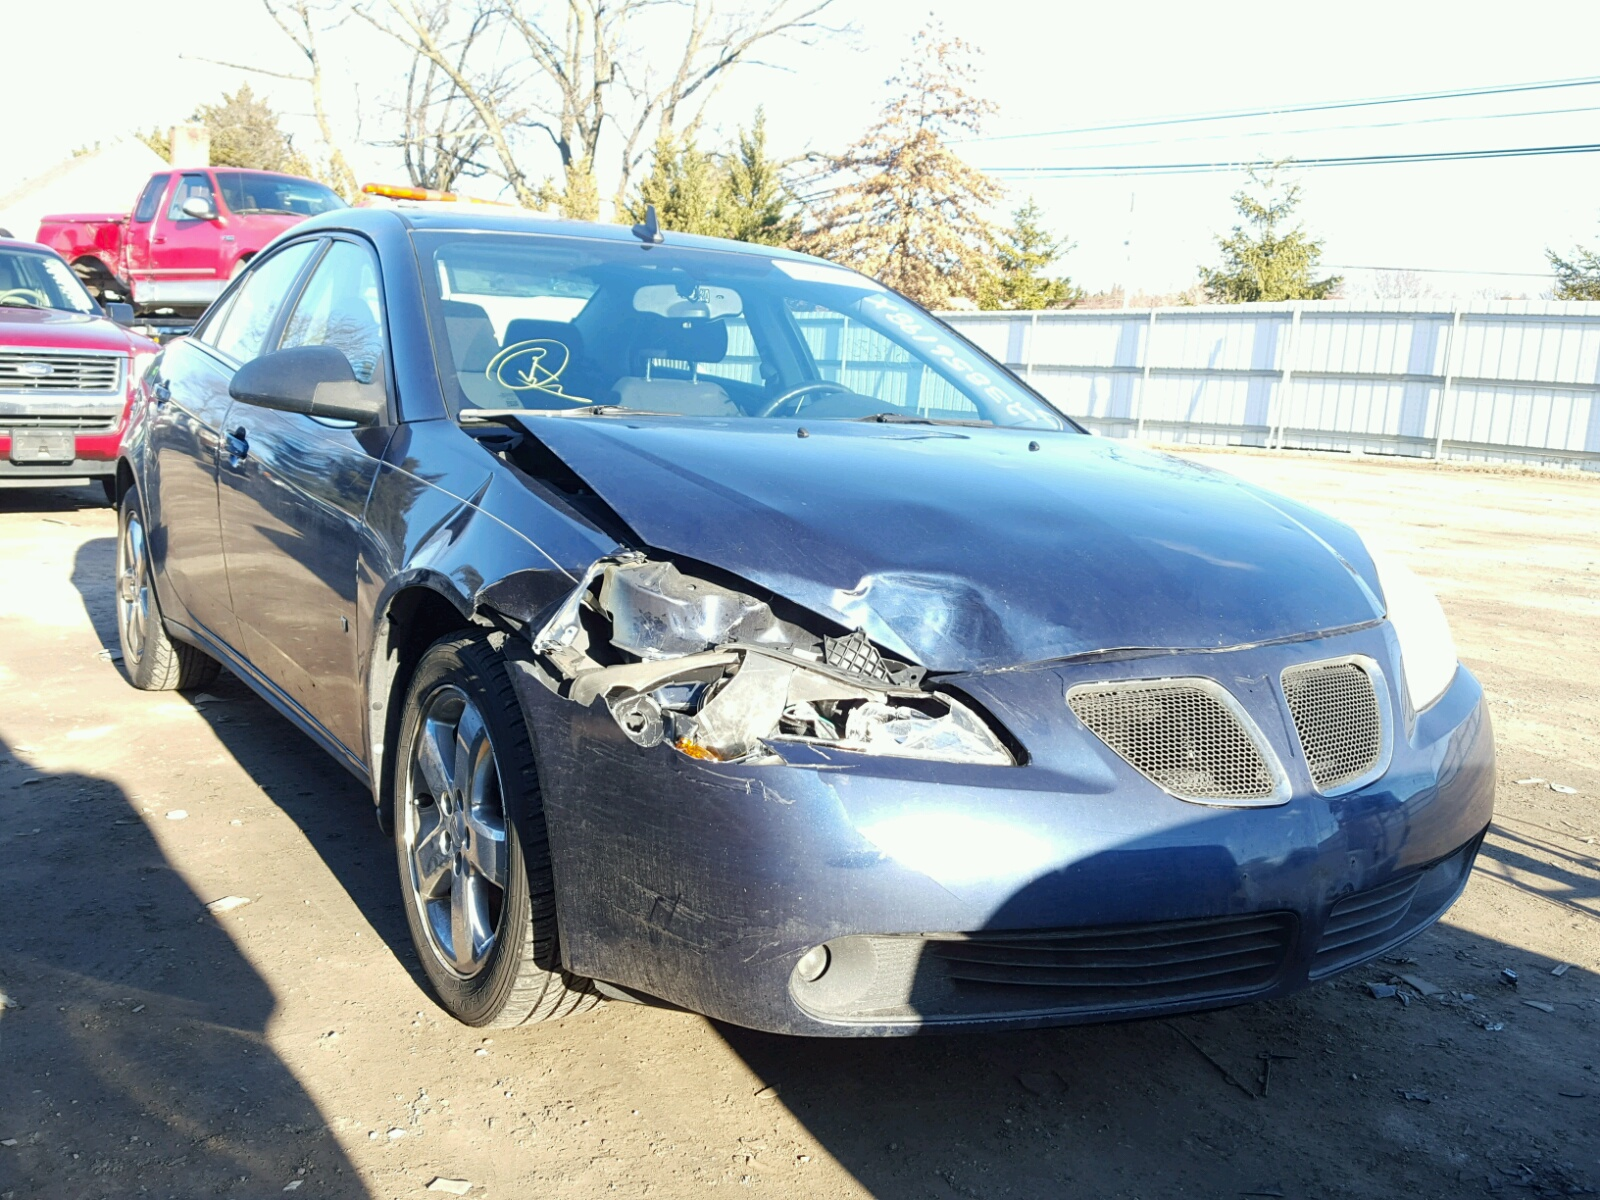 Auto Auction Ended on VIN 1G2ZH57N 2008 PONTIAC G6 GT in